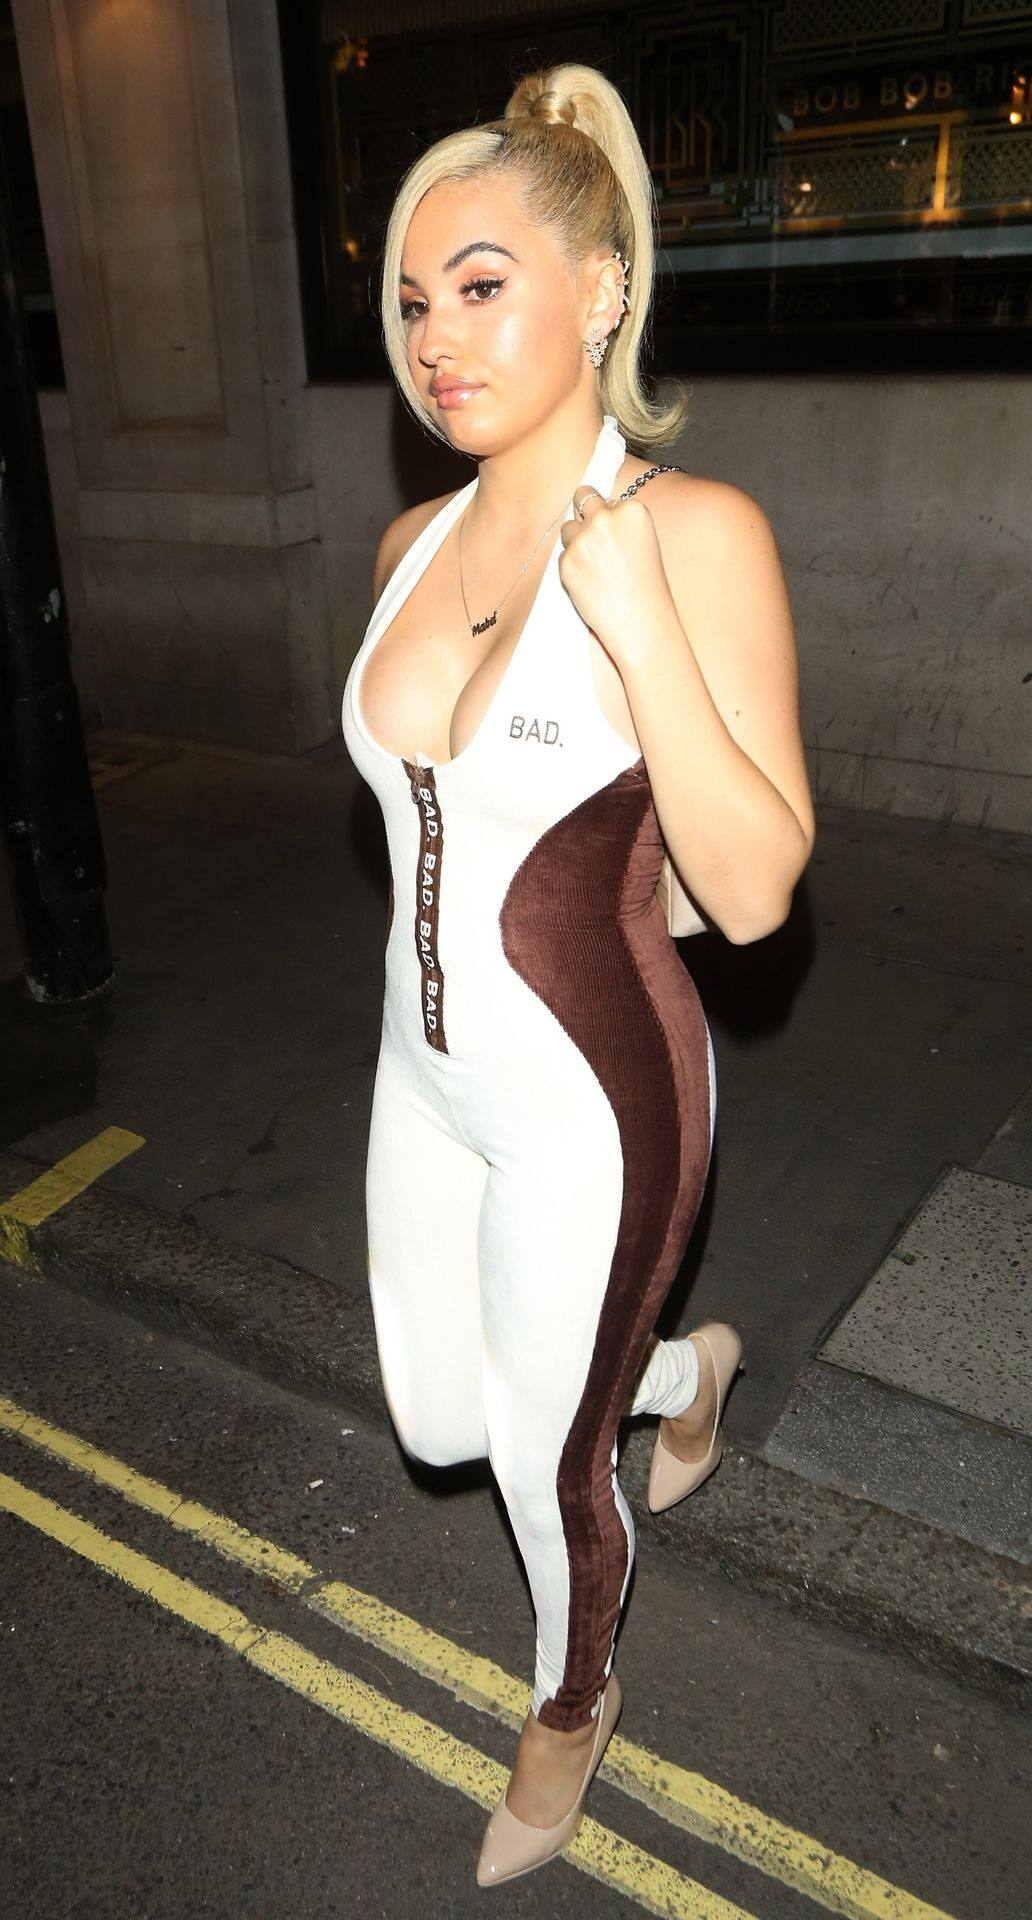 Mabel McVey - Beautiful Boobs in Sexy Cleavage Out in London